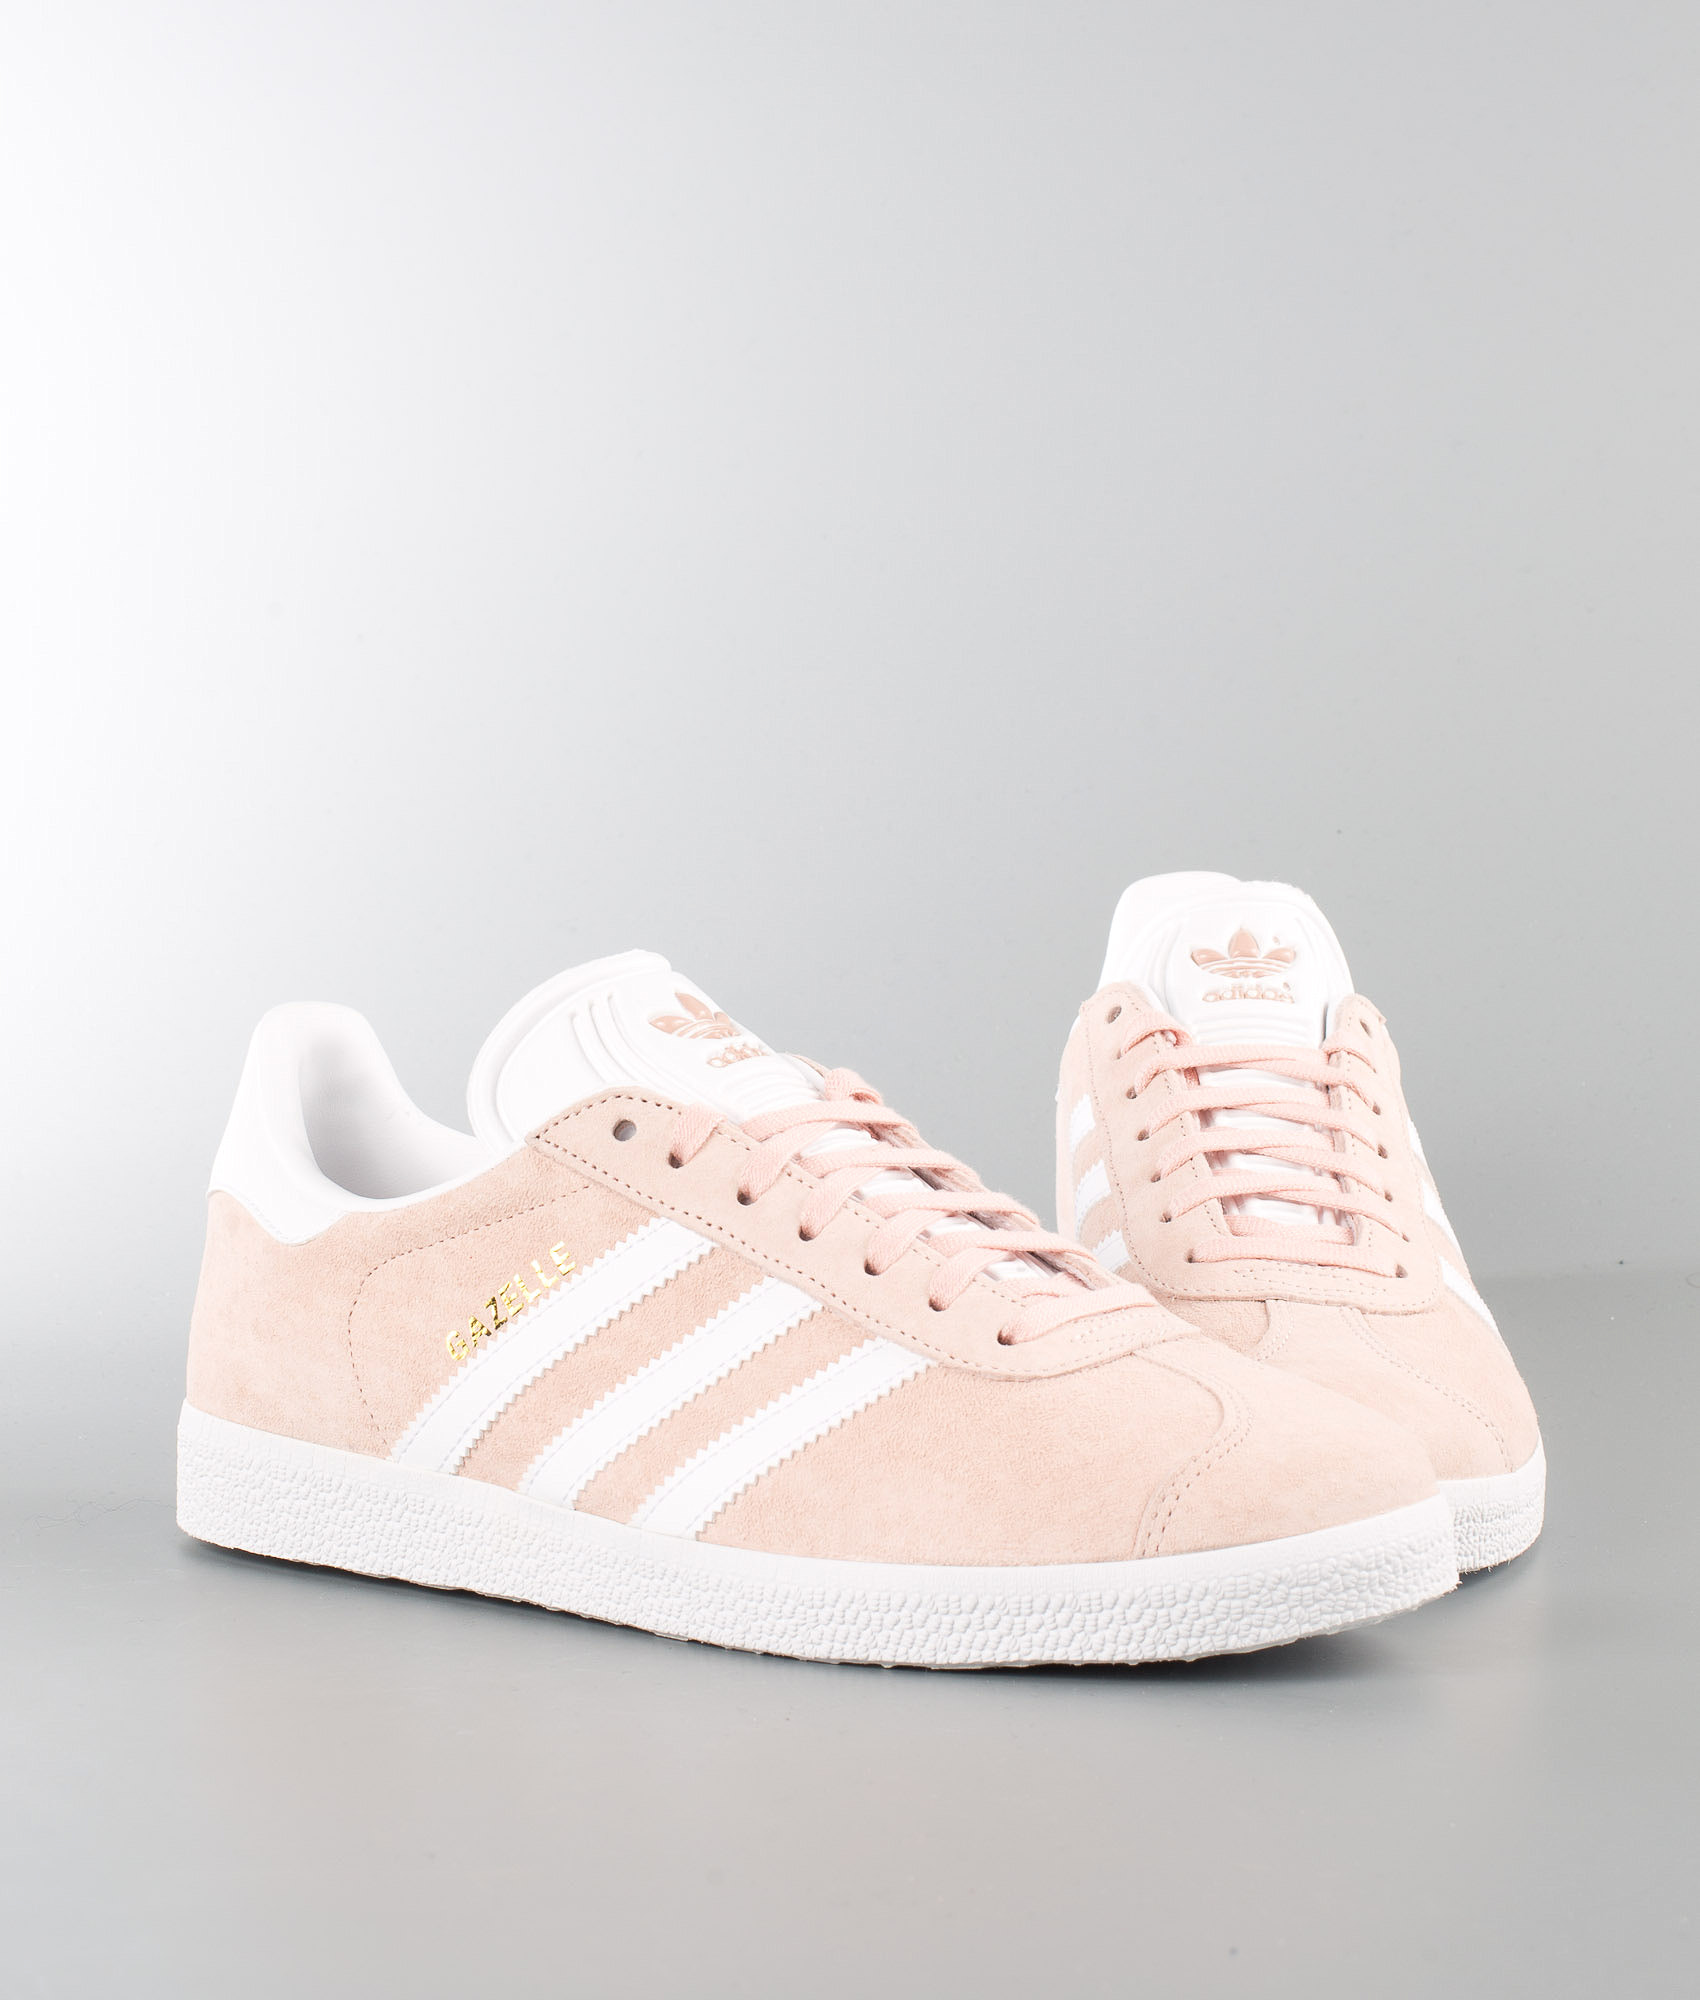 e00d6d77fe9 Adidas Originals Gazelle Shoes Vapour Pink/White/Goldmt - Ridestore.com